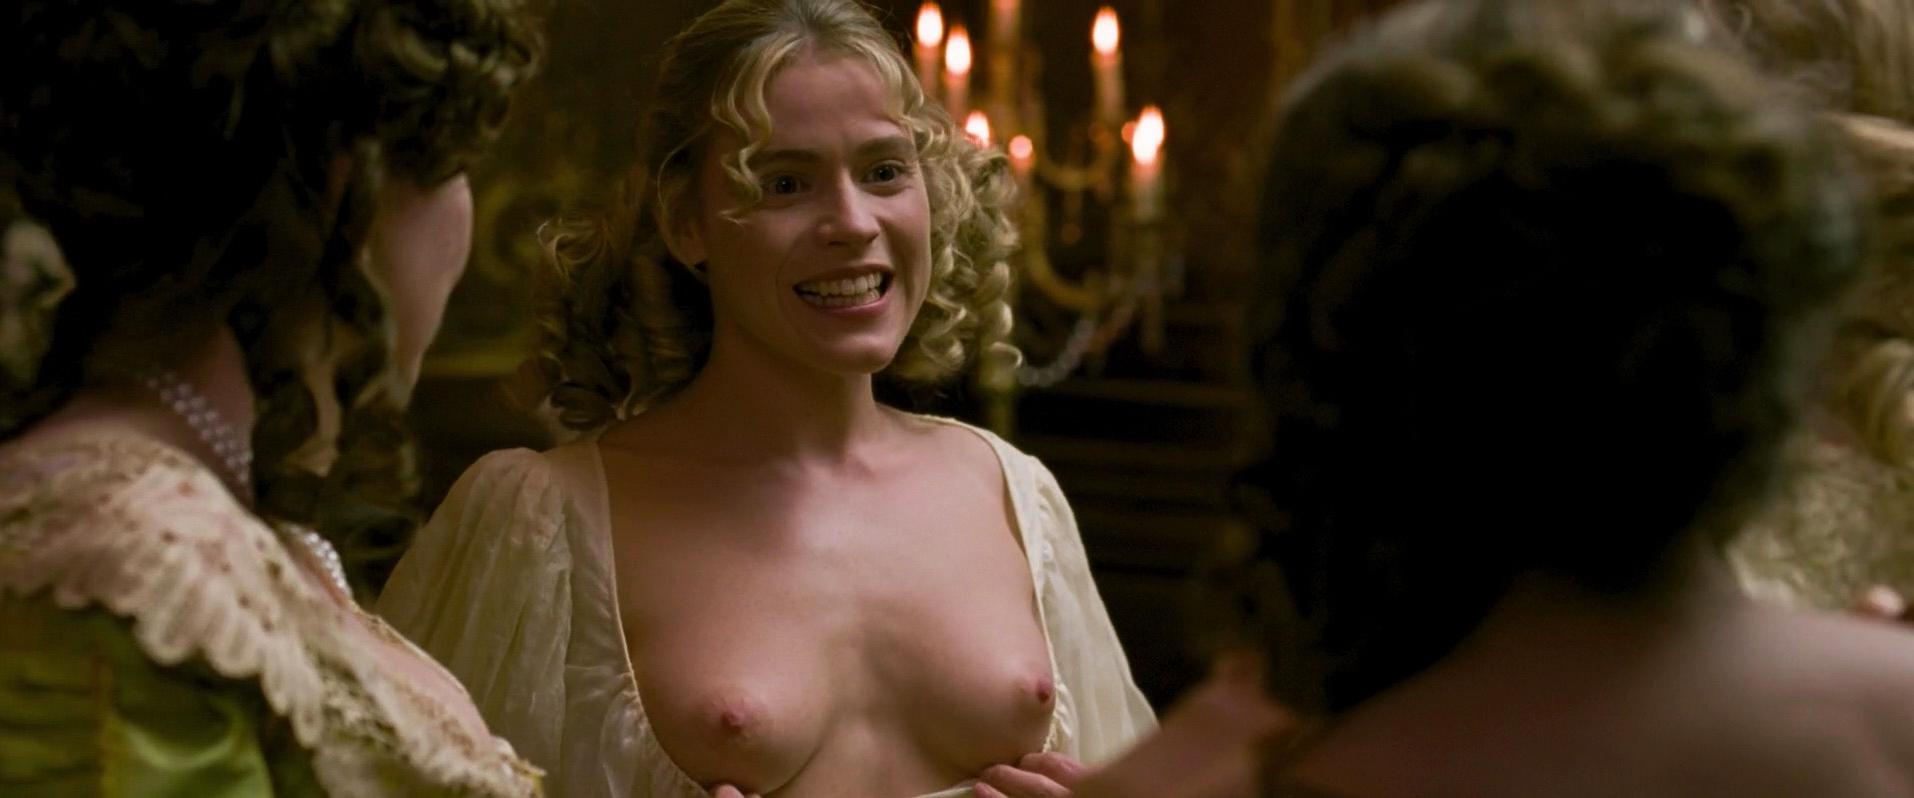 Naked Pictures Of Kate Winslet photo 18